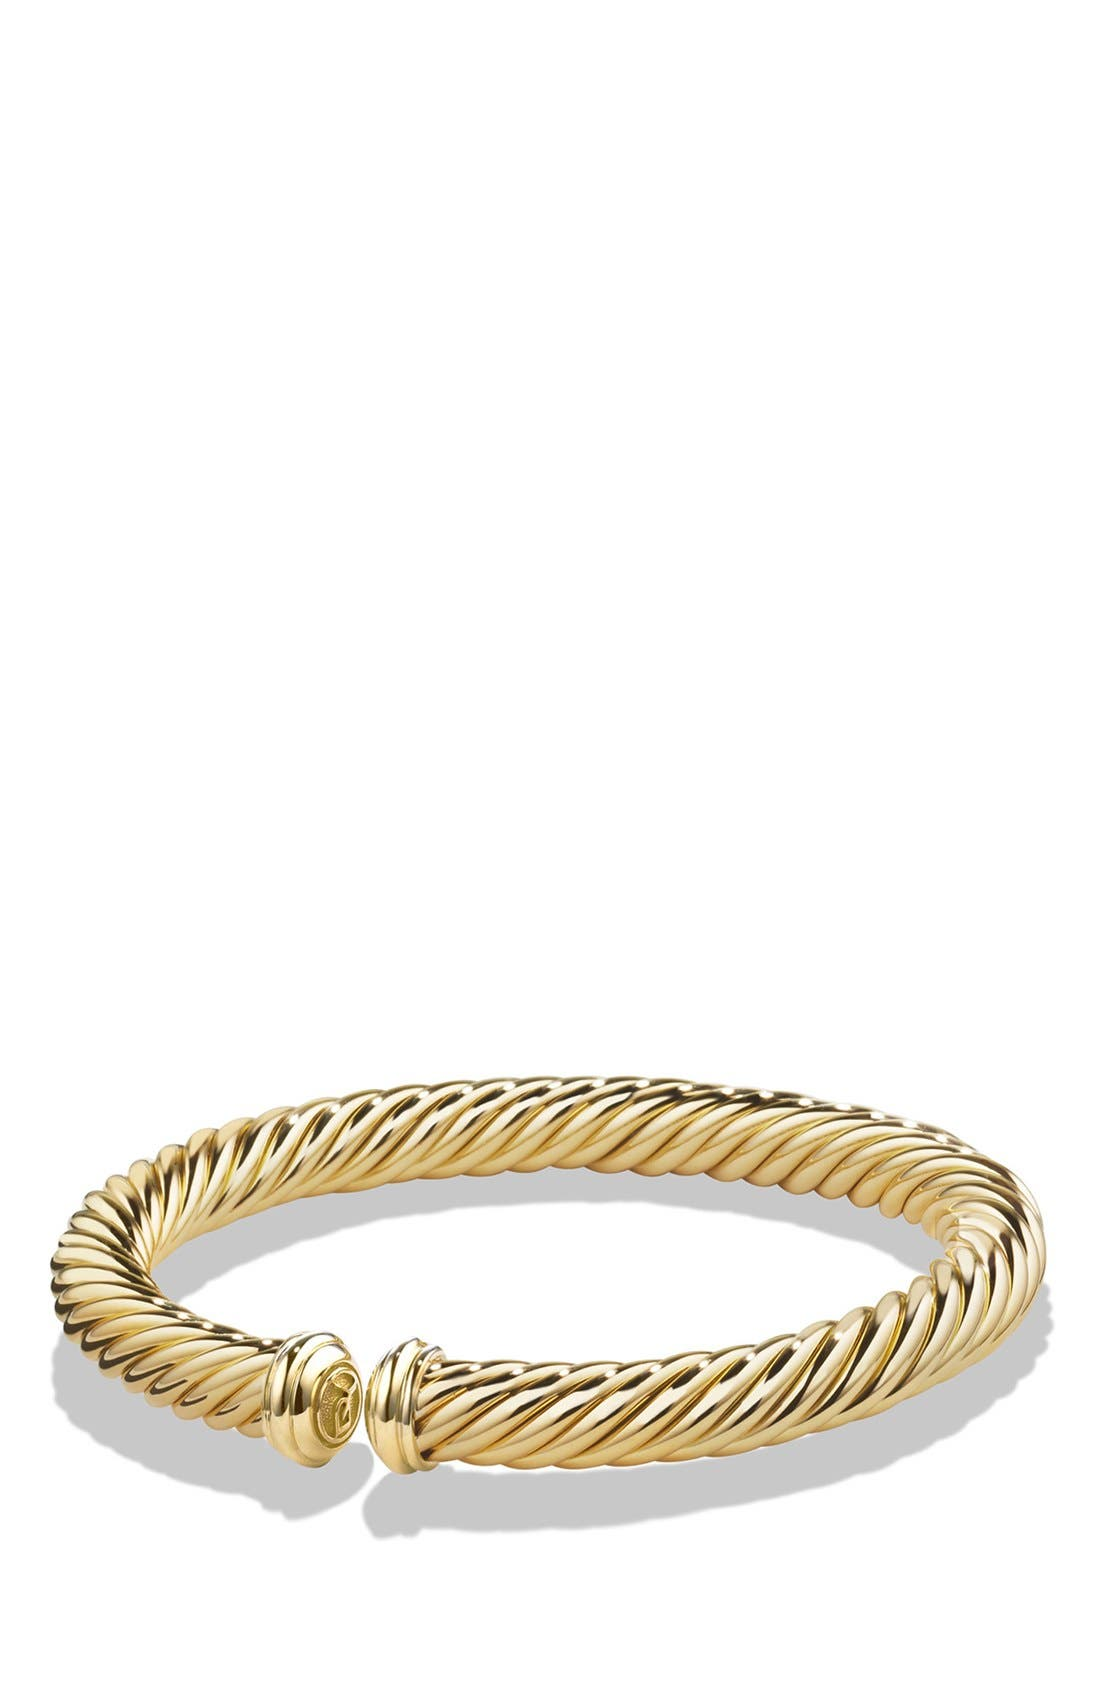 DAVID YURMAN Cable Classics - Cable Spira Bracelet in Gold